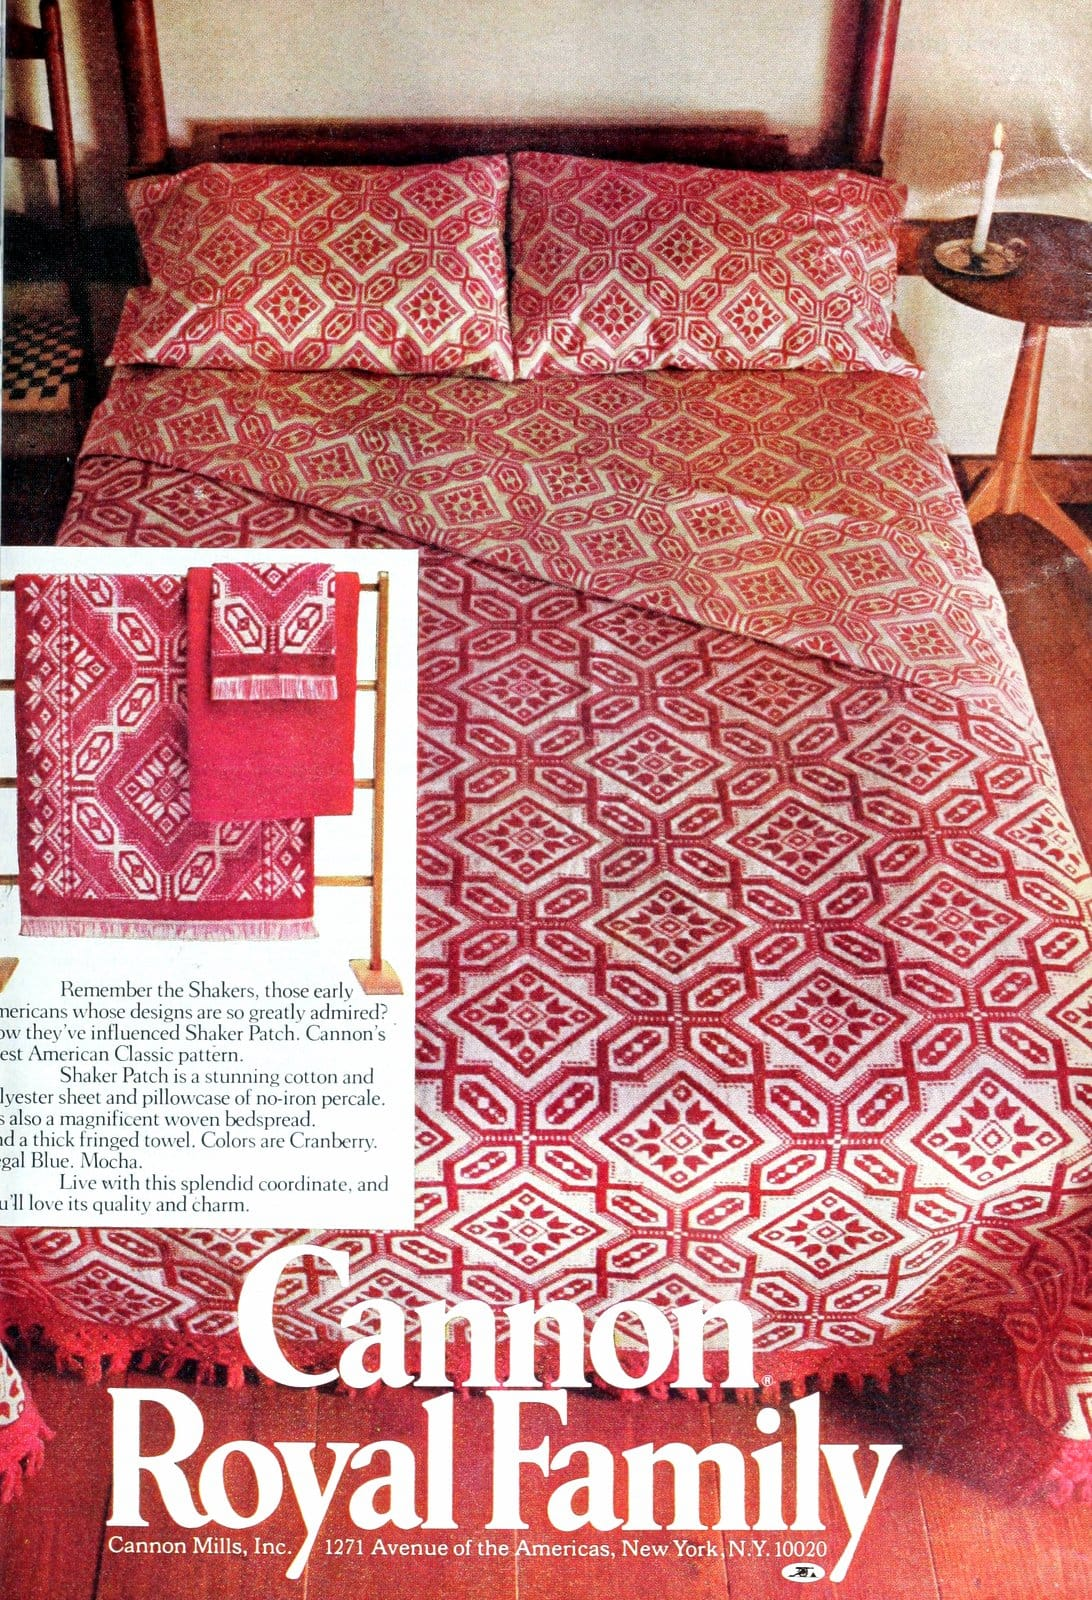 Vintage Shaker-style red and white patterned bedspread (1975)